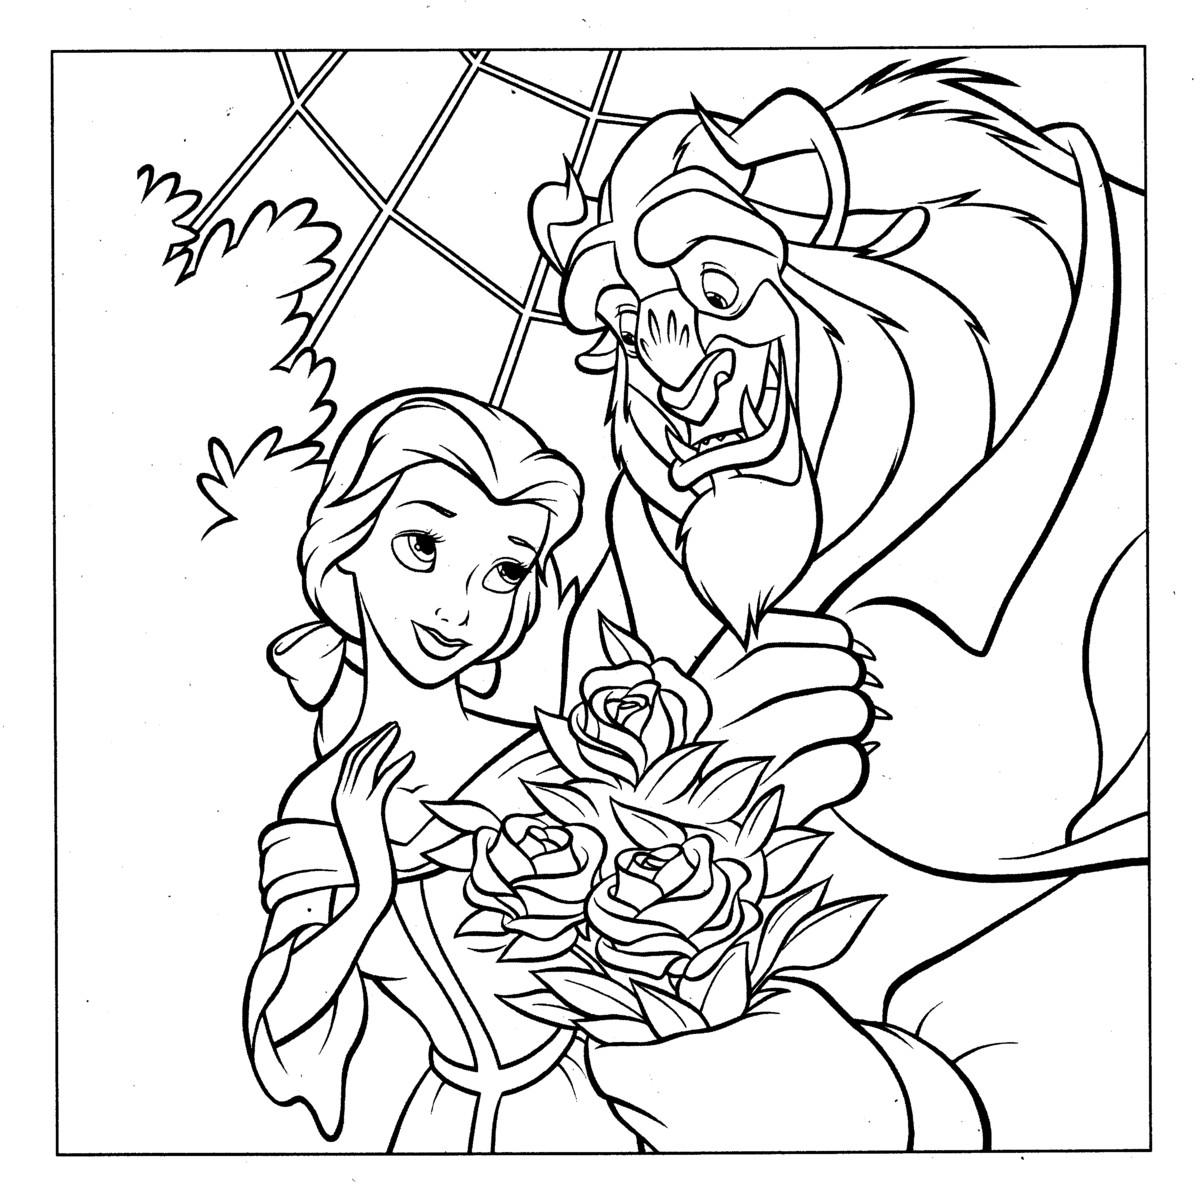 presents roses to Belle.